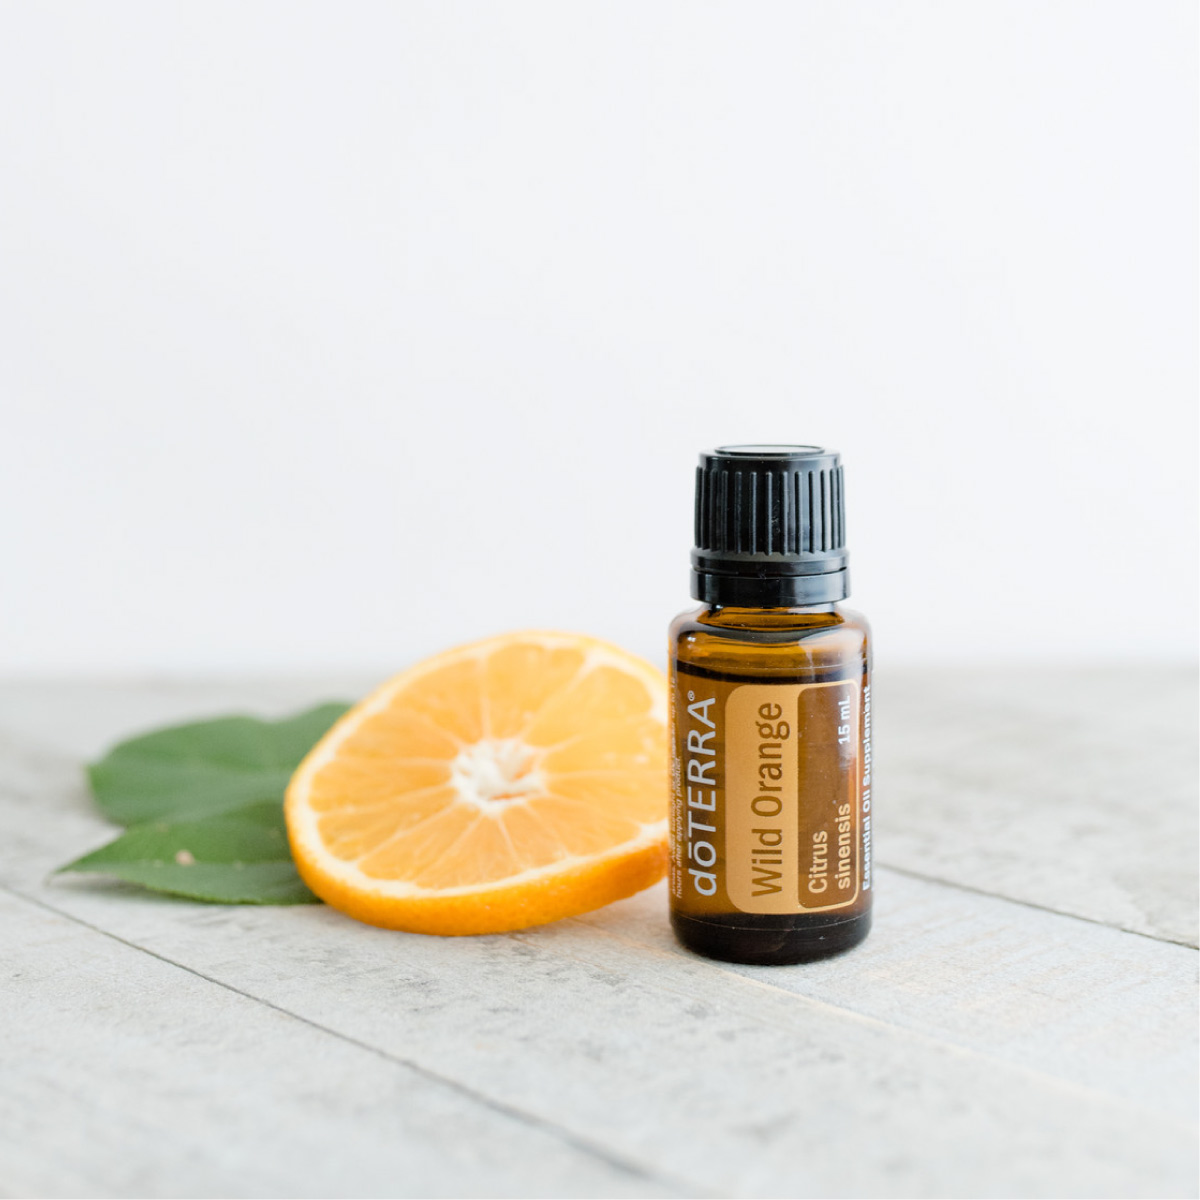 Bottle of doTERRA Wild Orange oil next to a fresh orange slice and green leaves. What are the best ways to use Wild Orange essential oil? People like to use Wild Orange oil for cleansing surfaces around the home, or internally to support a healthy immune system.